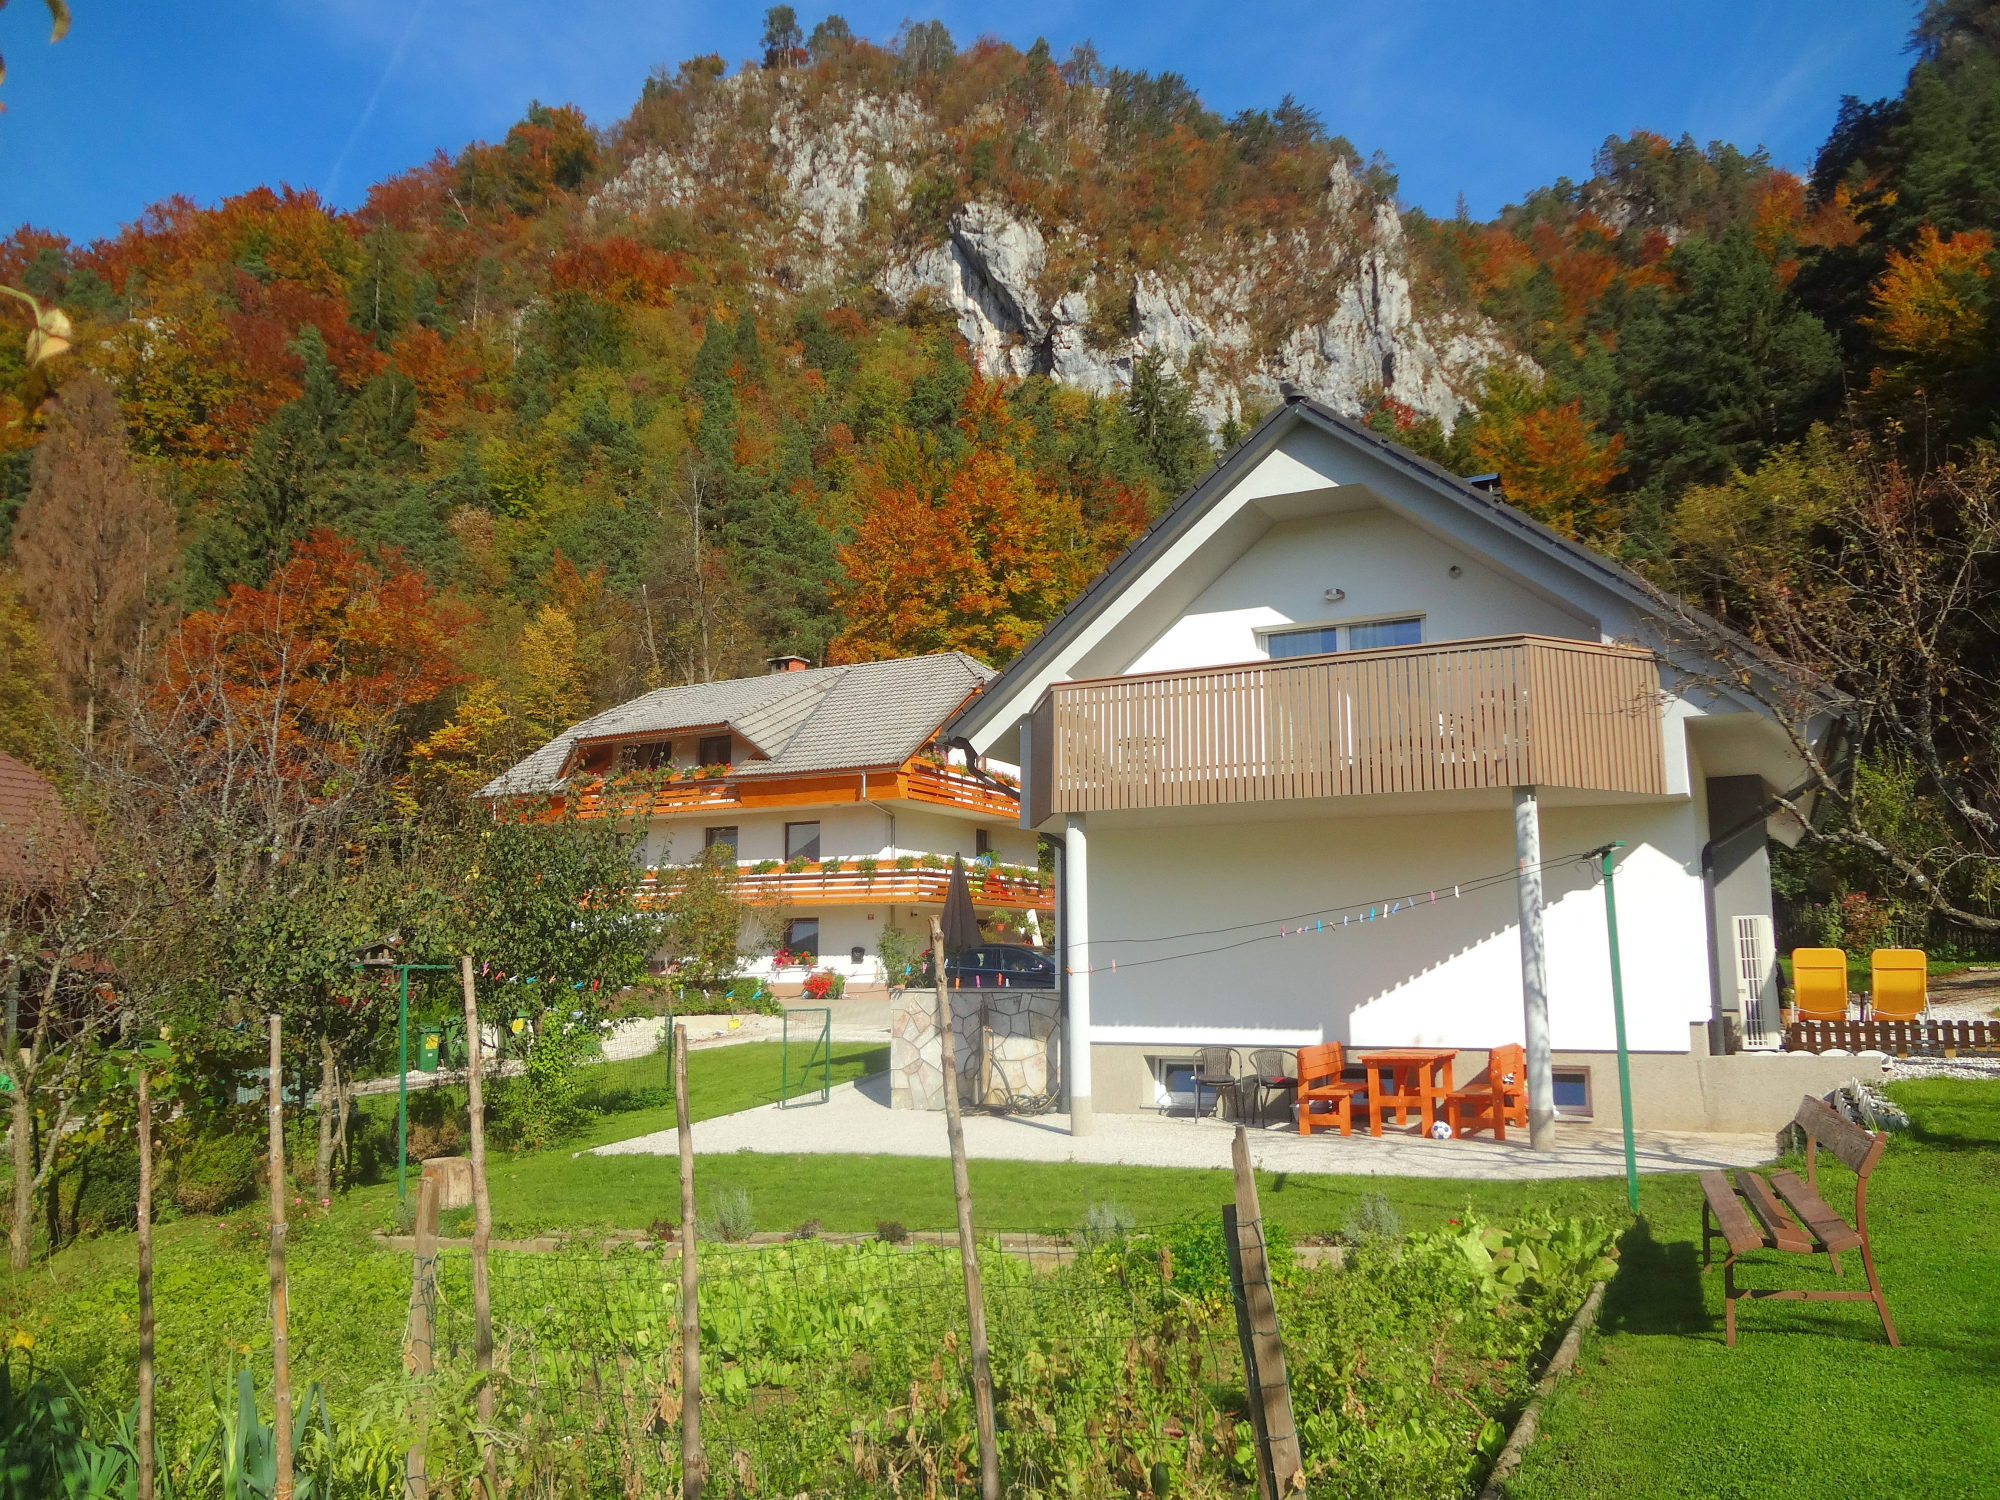 Exterior of Fine Stay Apartments in autumn, the Bled area of Slovenia